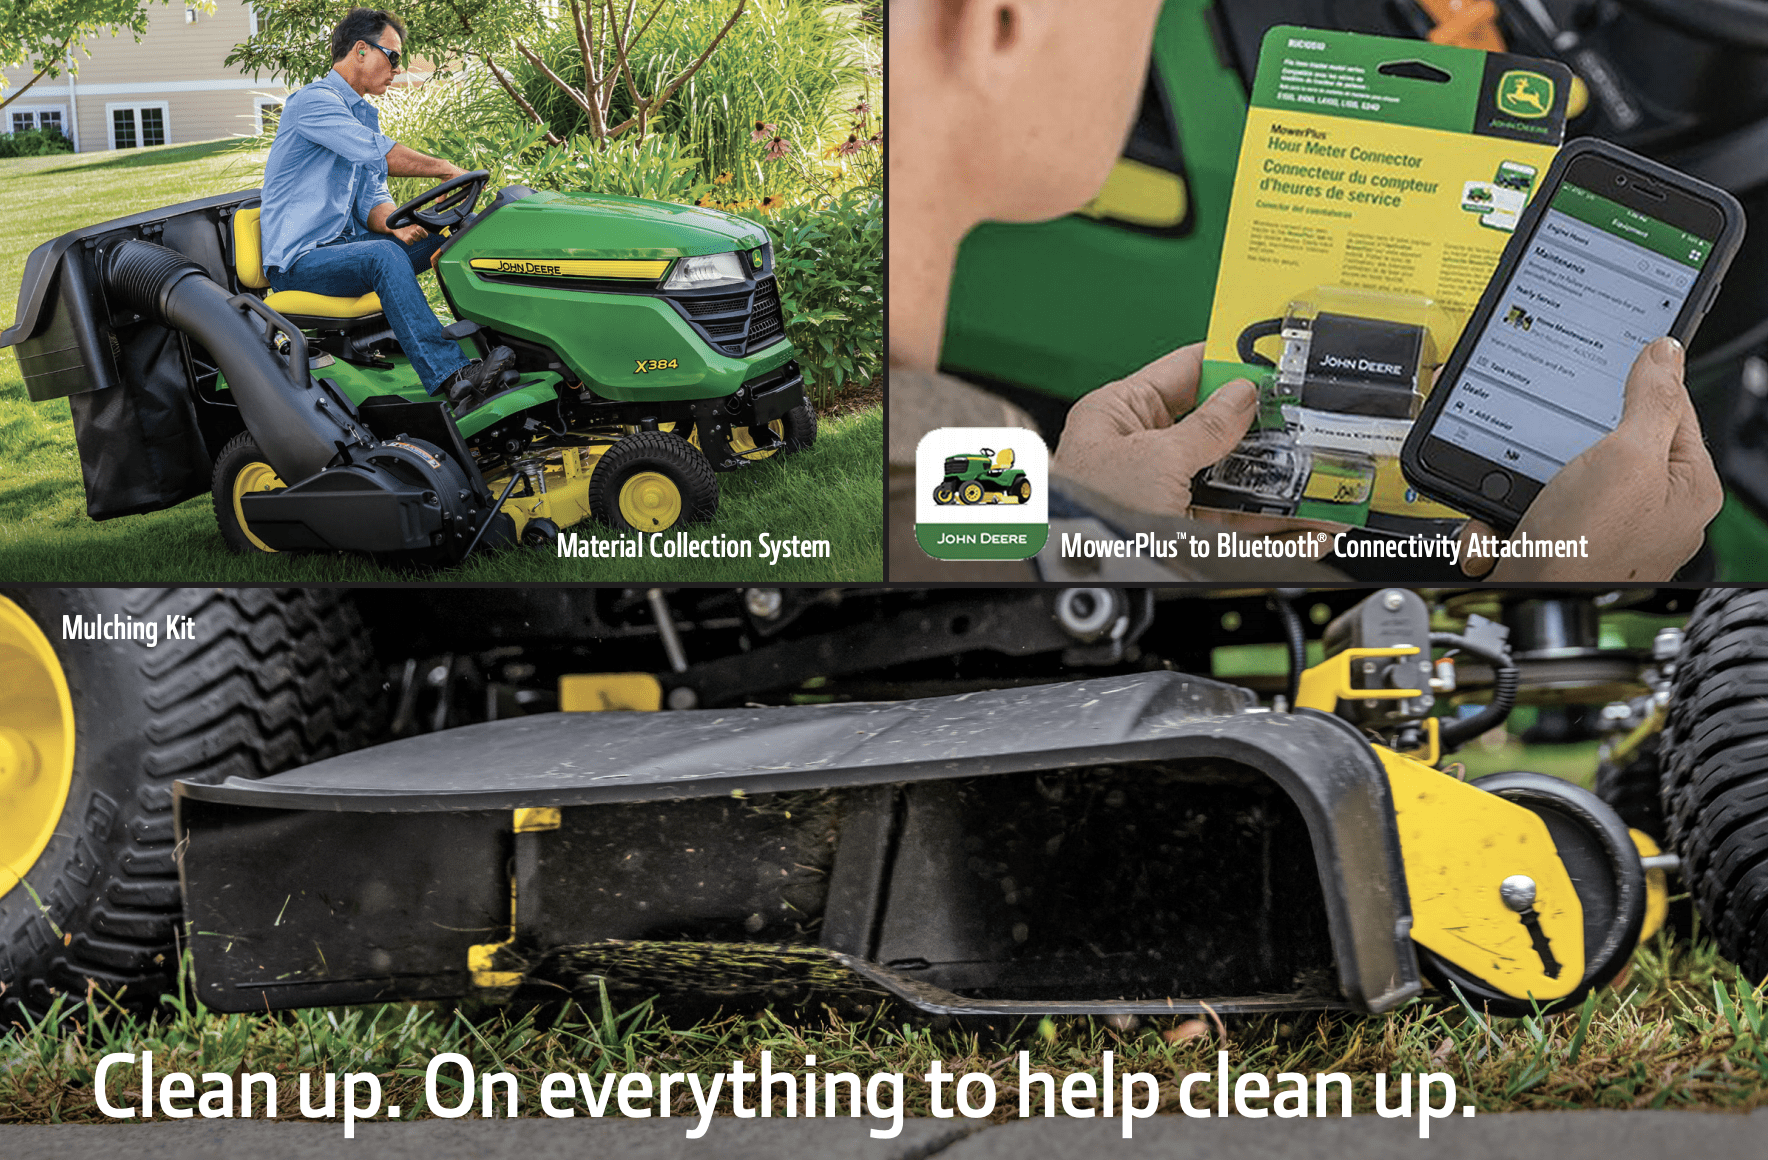 15% Off Material Collection Systems, Mulching Kits & Bluetooth® Connectivity Attachments